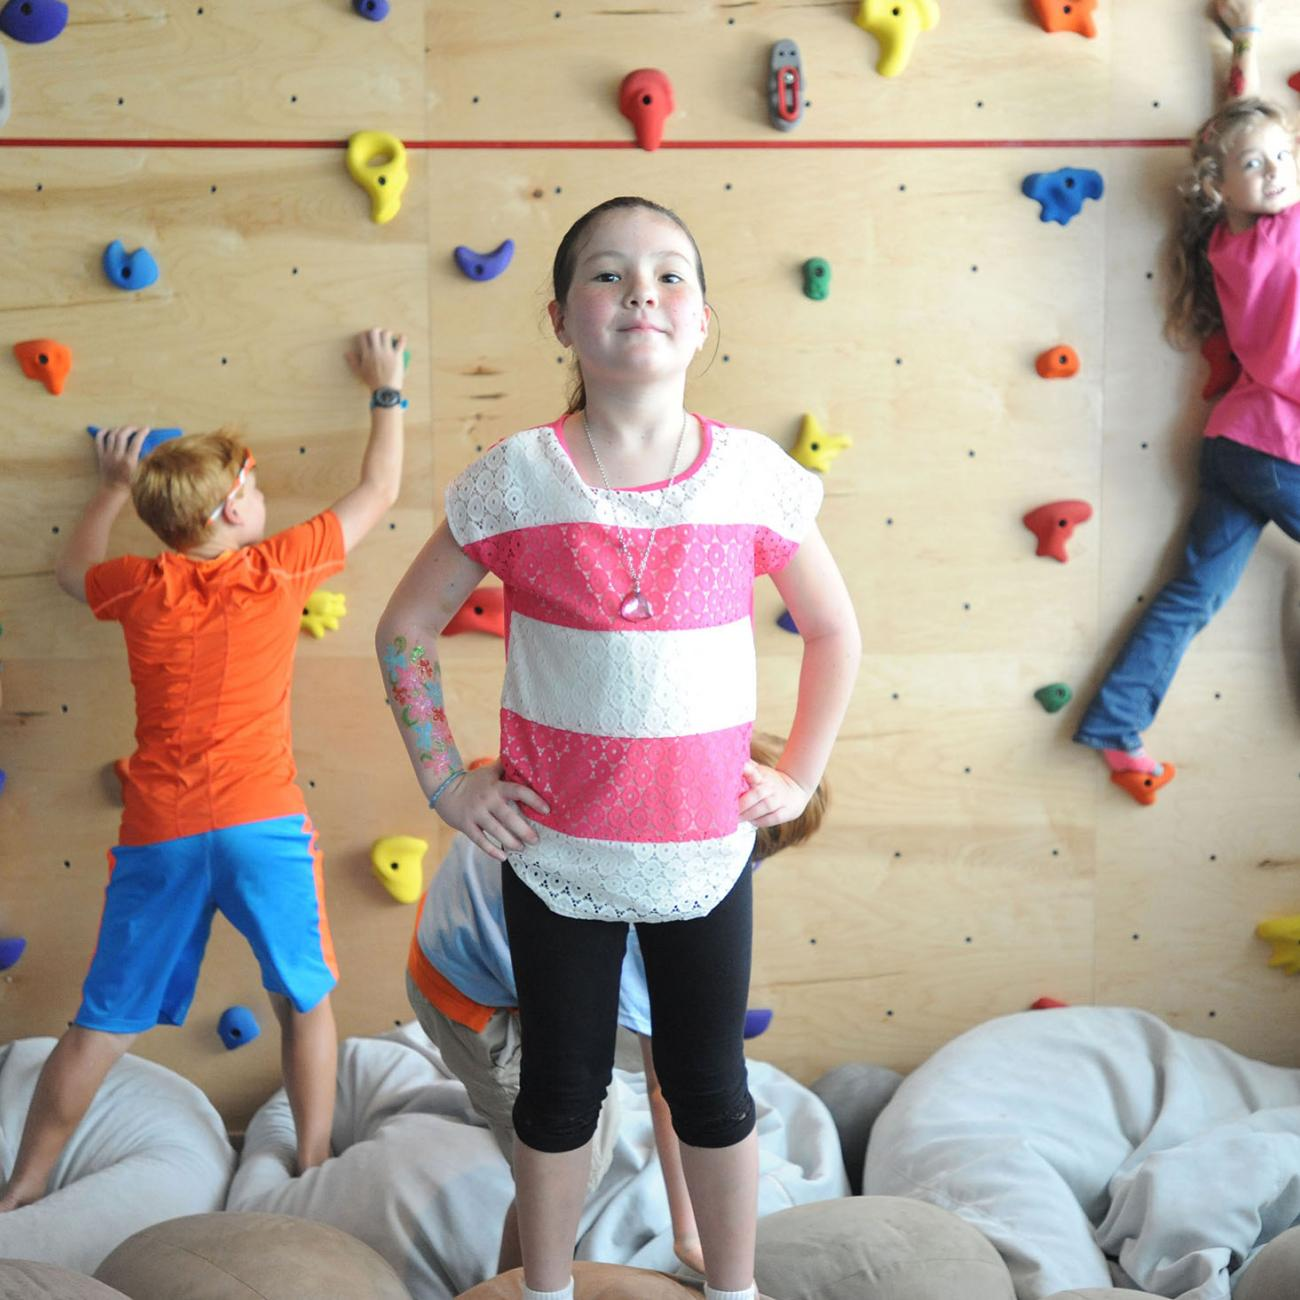 A young girl standing confidently in front of a rock climbing wall